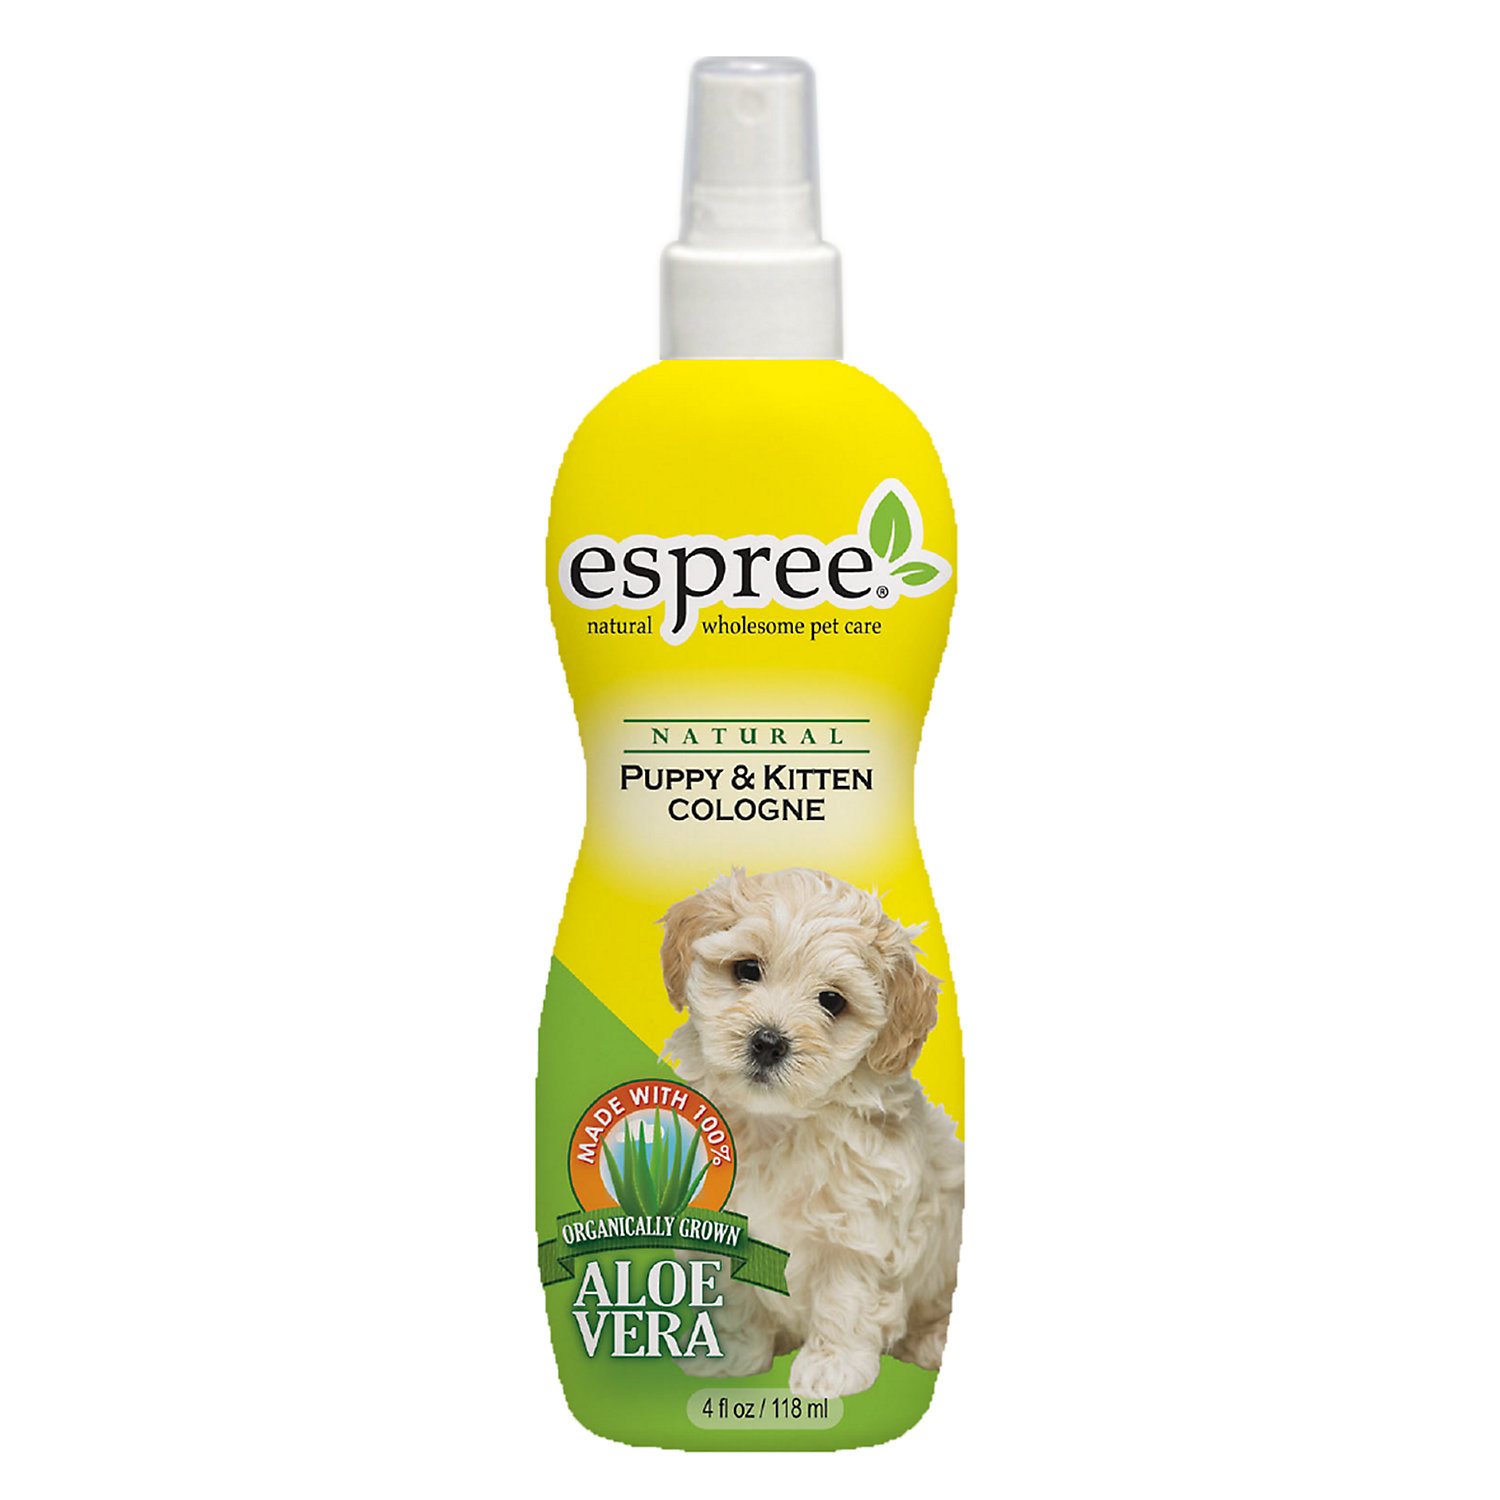 Espree Puppy & Kitten Baby Powder Odor Neutralizing Pet Cologne